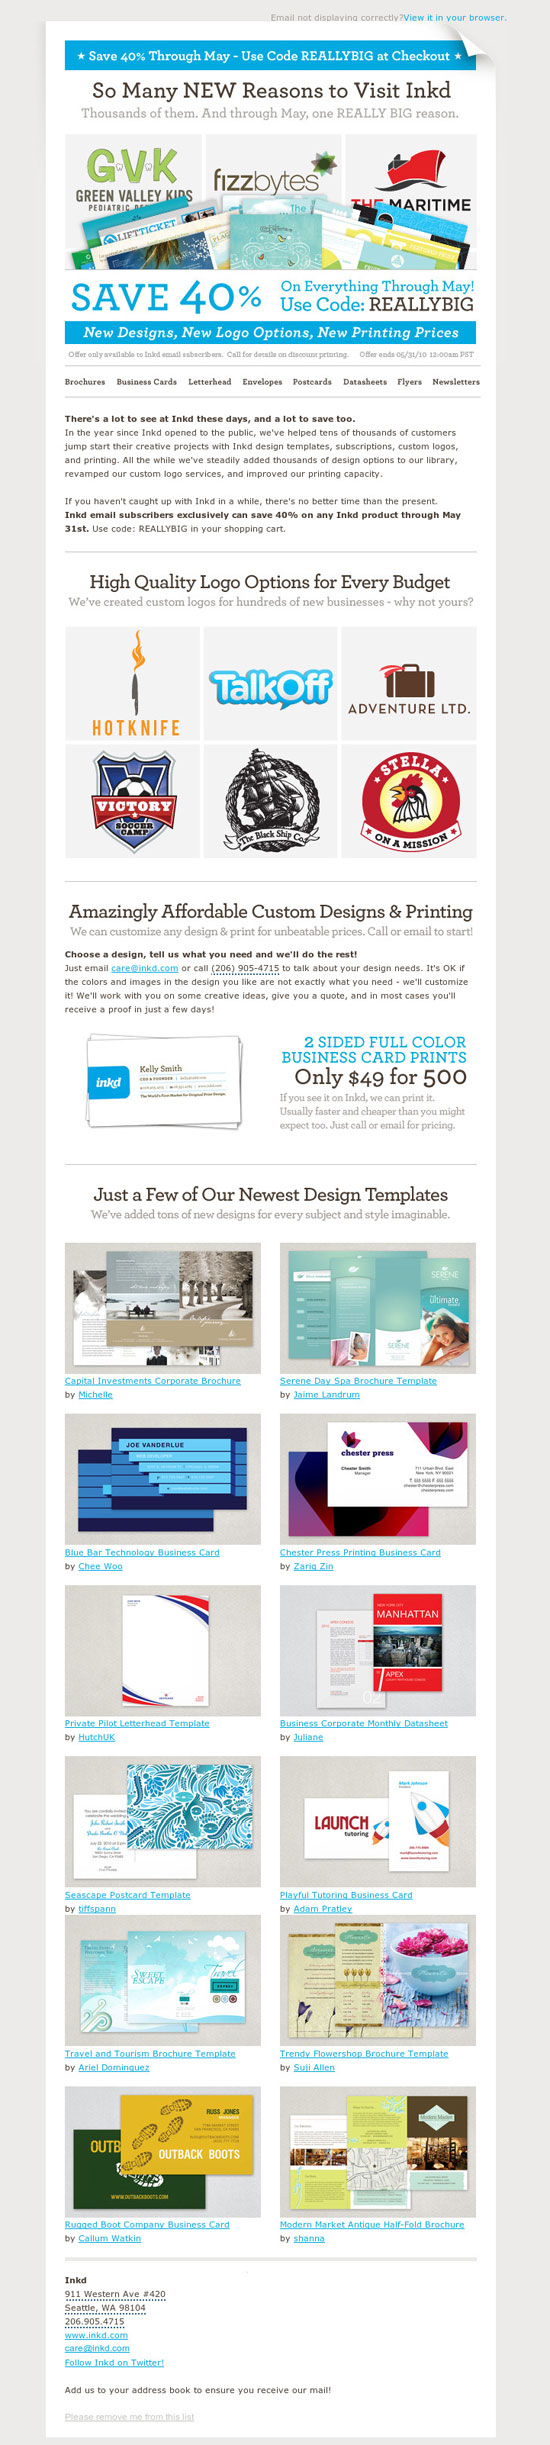 Inspiring Creative Studio Email Newsletters